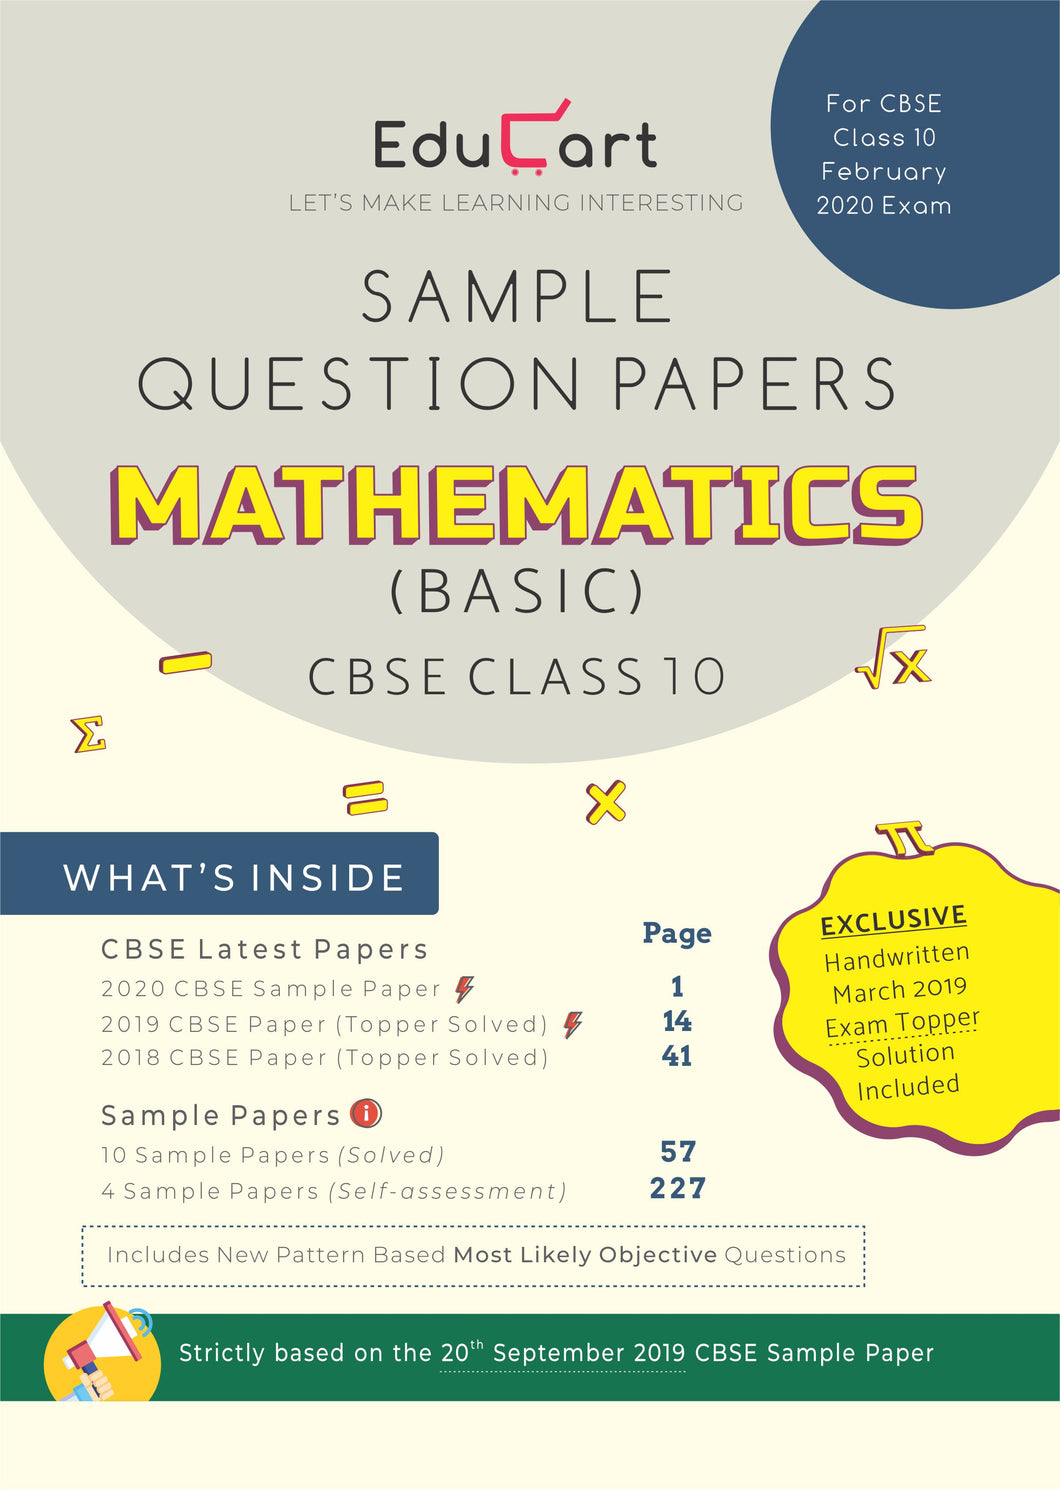 CBSE Sample Question Papers Class 10 Mathematics (Basic) For February 2020 Exam (SP104)